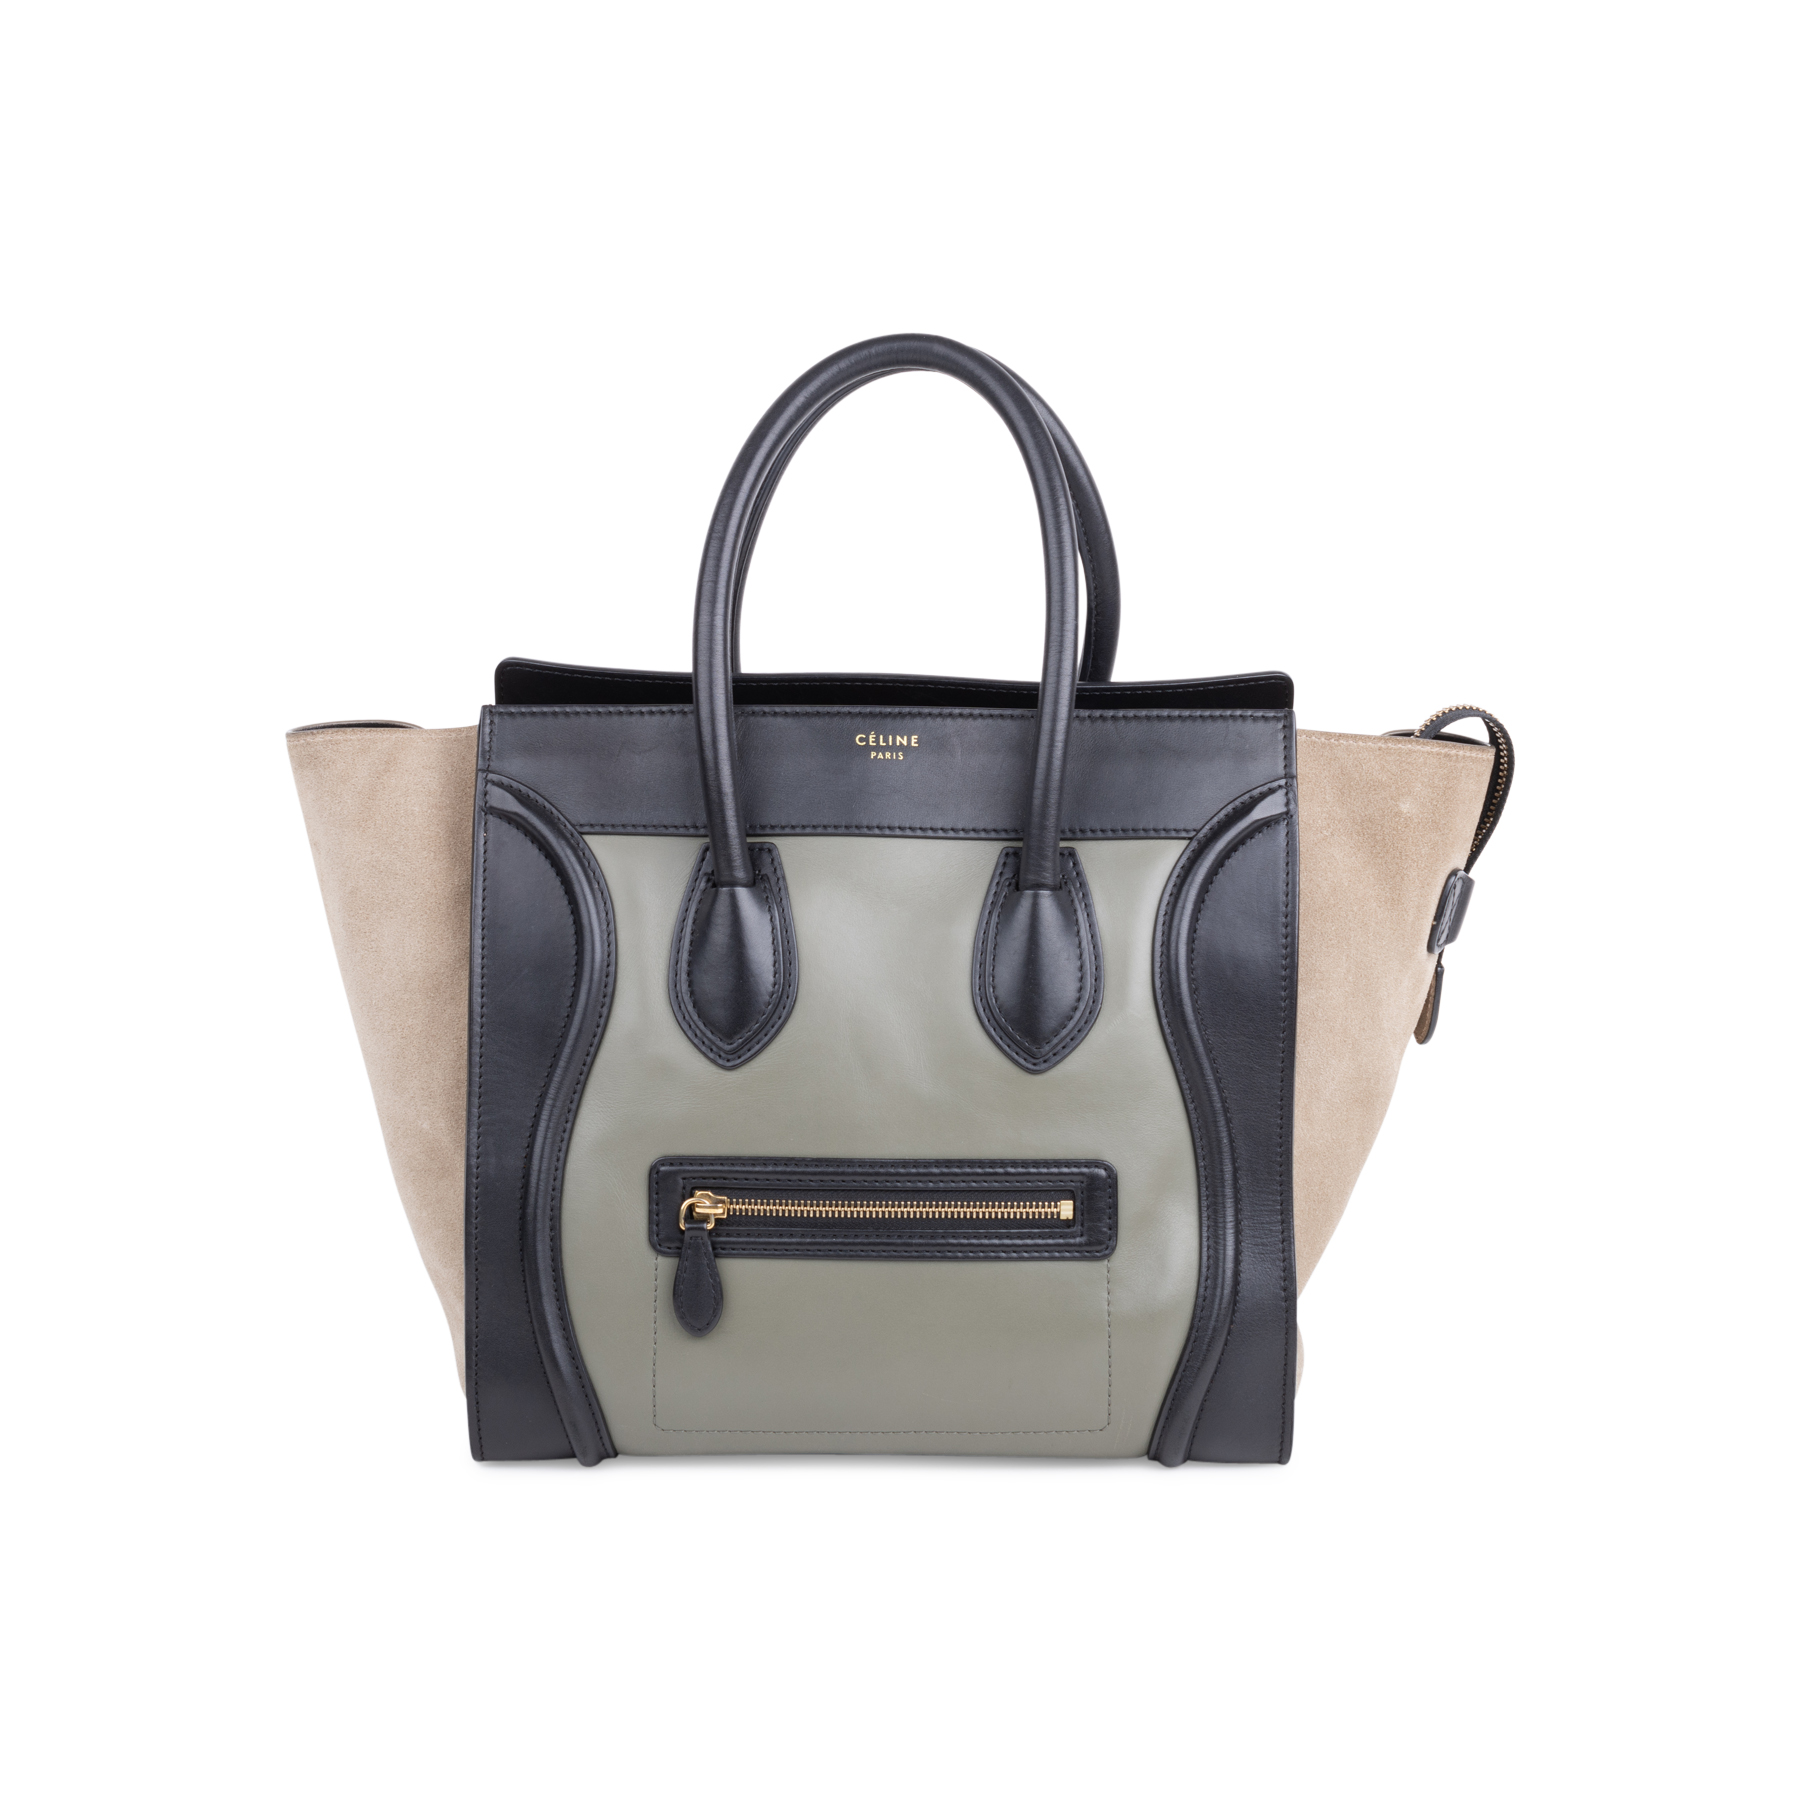 f99035747a45 Authentic Second Hand Céline Mini Luggage Tote (PSS-577-00005) | THE FIFTH  COLLECTION